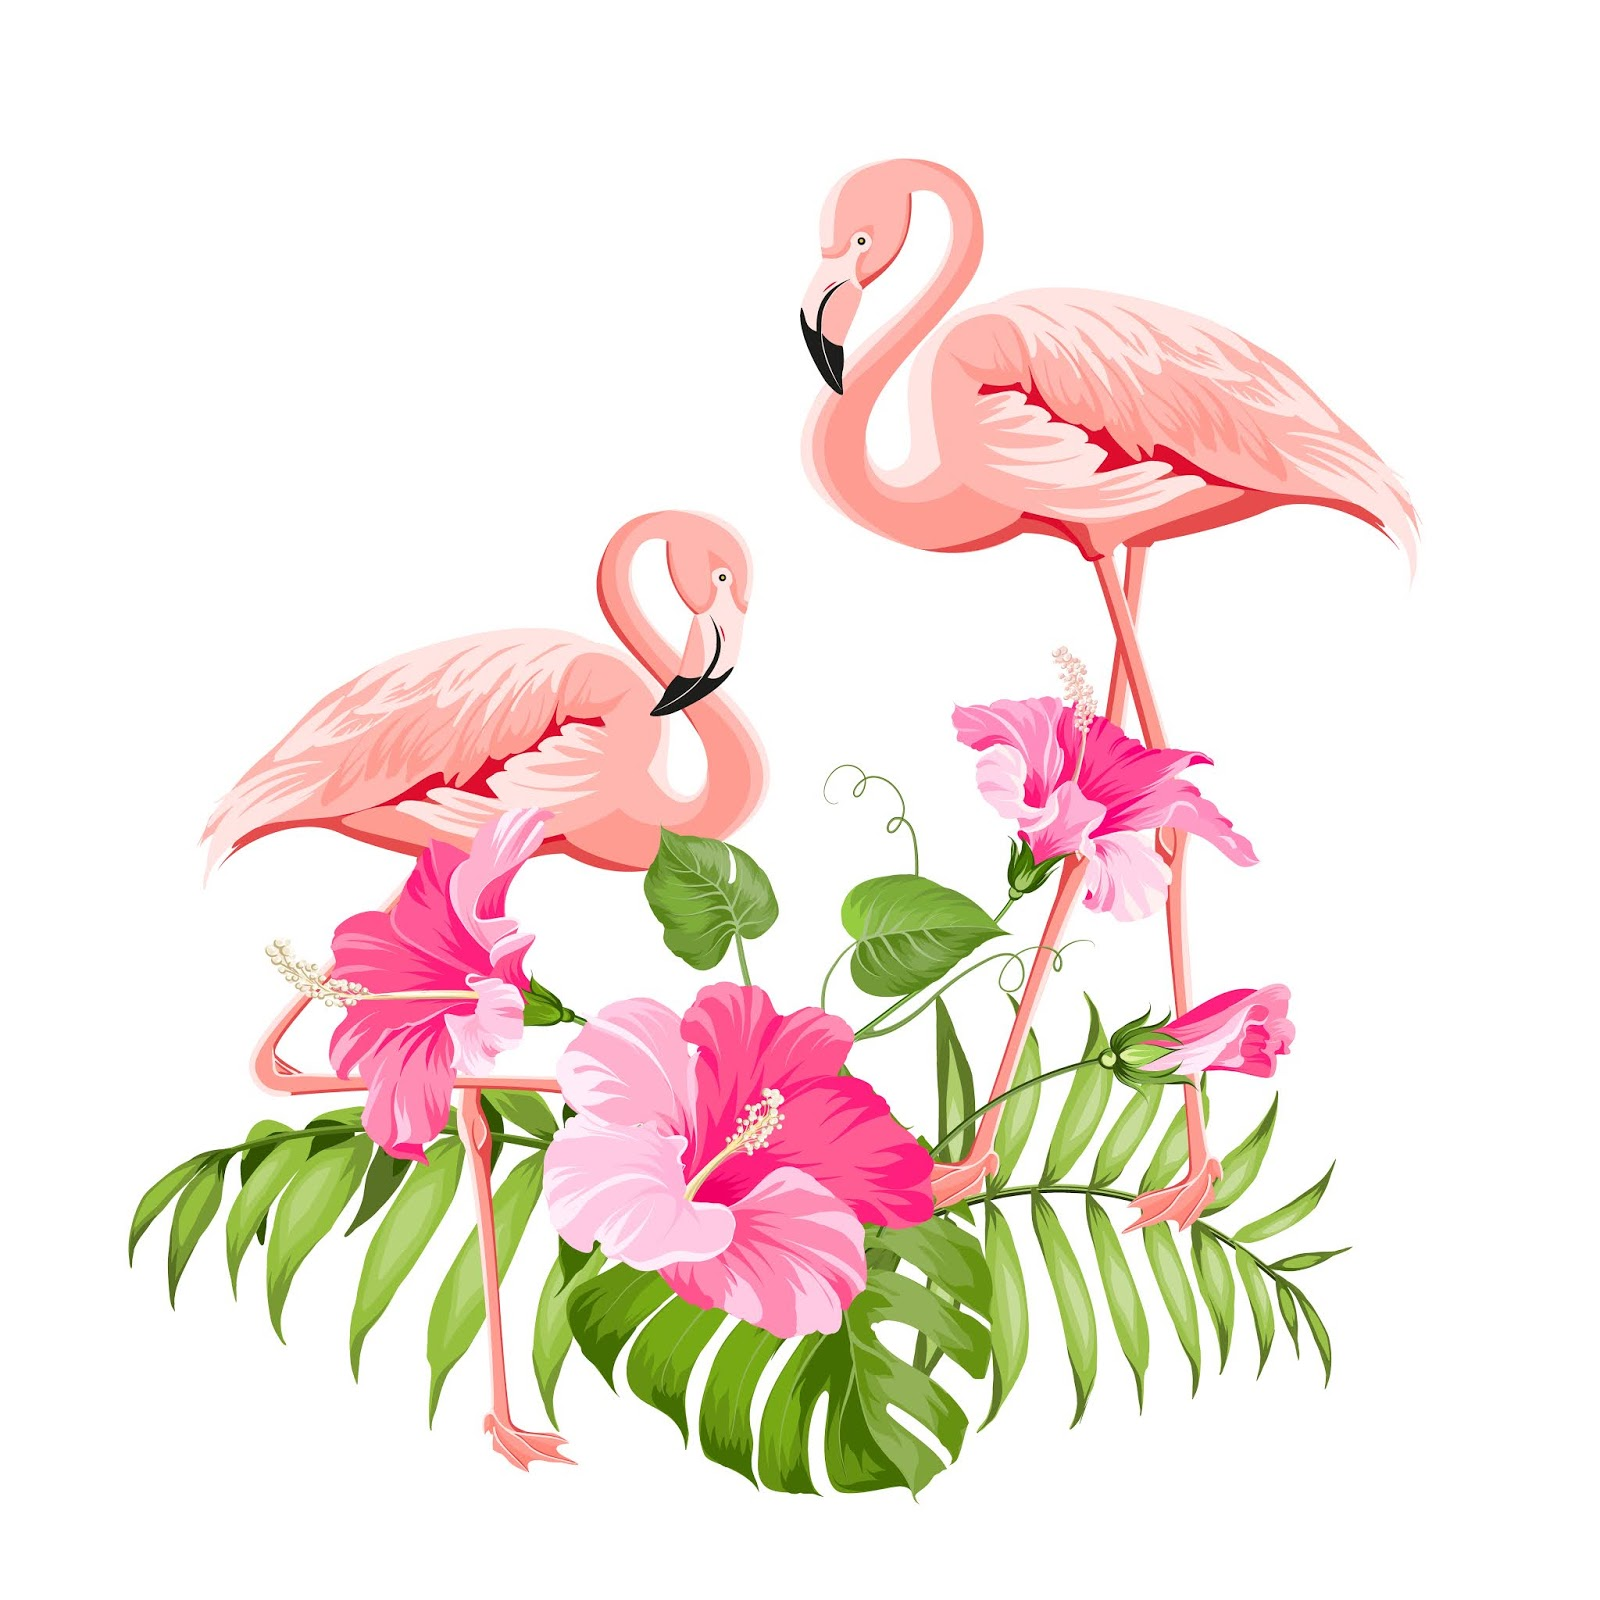 Tropical Flower Flamingos Free Download Vector CDR, AI, EPS and PNG Formats